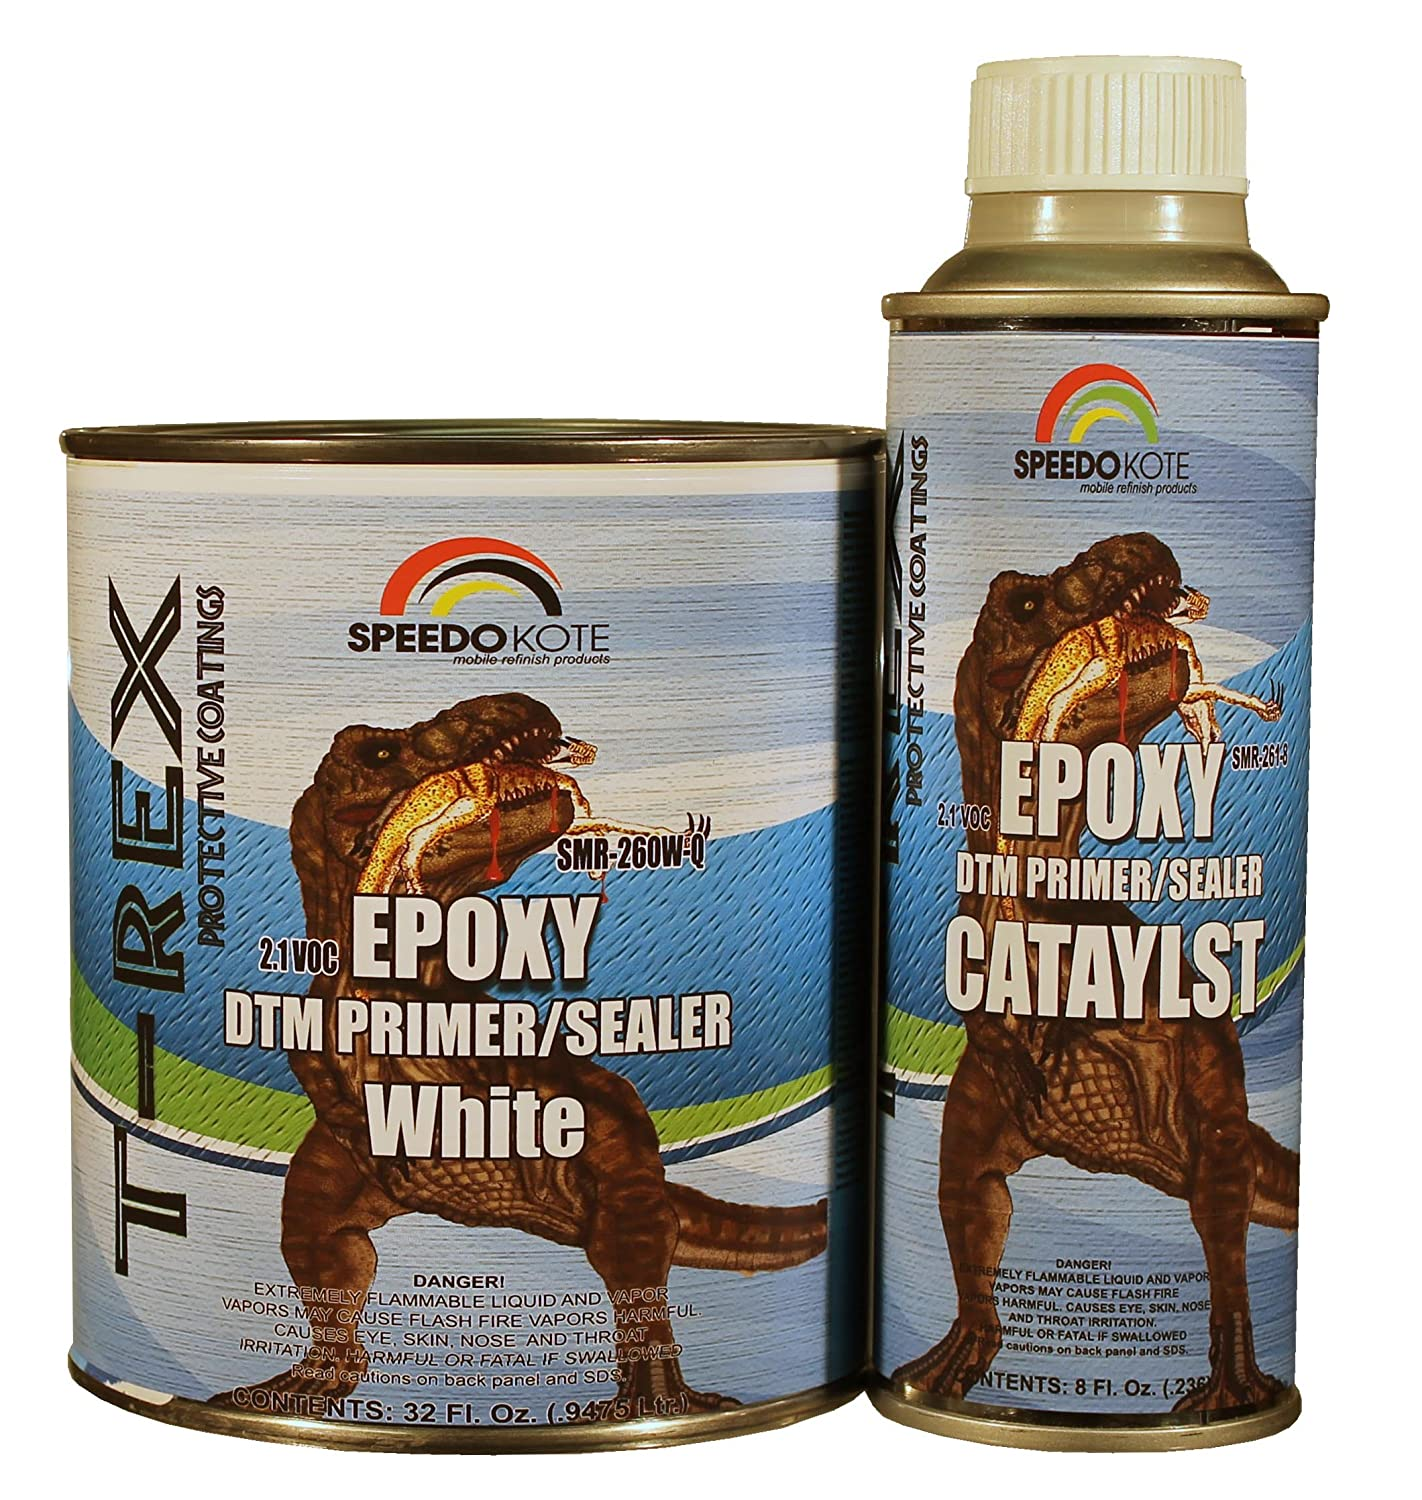 Epoxy Fast Dry 2.1 low voc DTM Primer & Sealer White Quart Kit, SMR-260W-Q/261-8 Speedokote